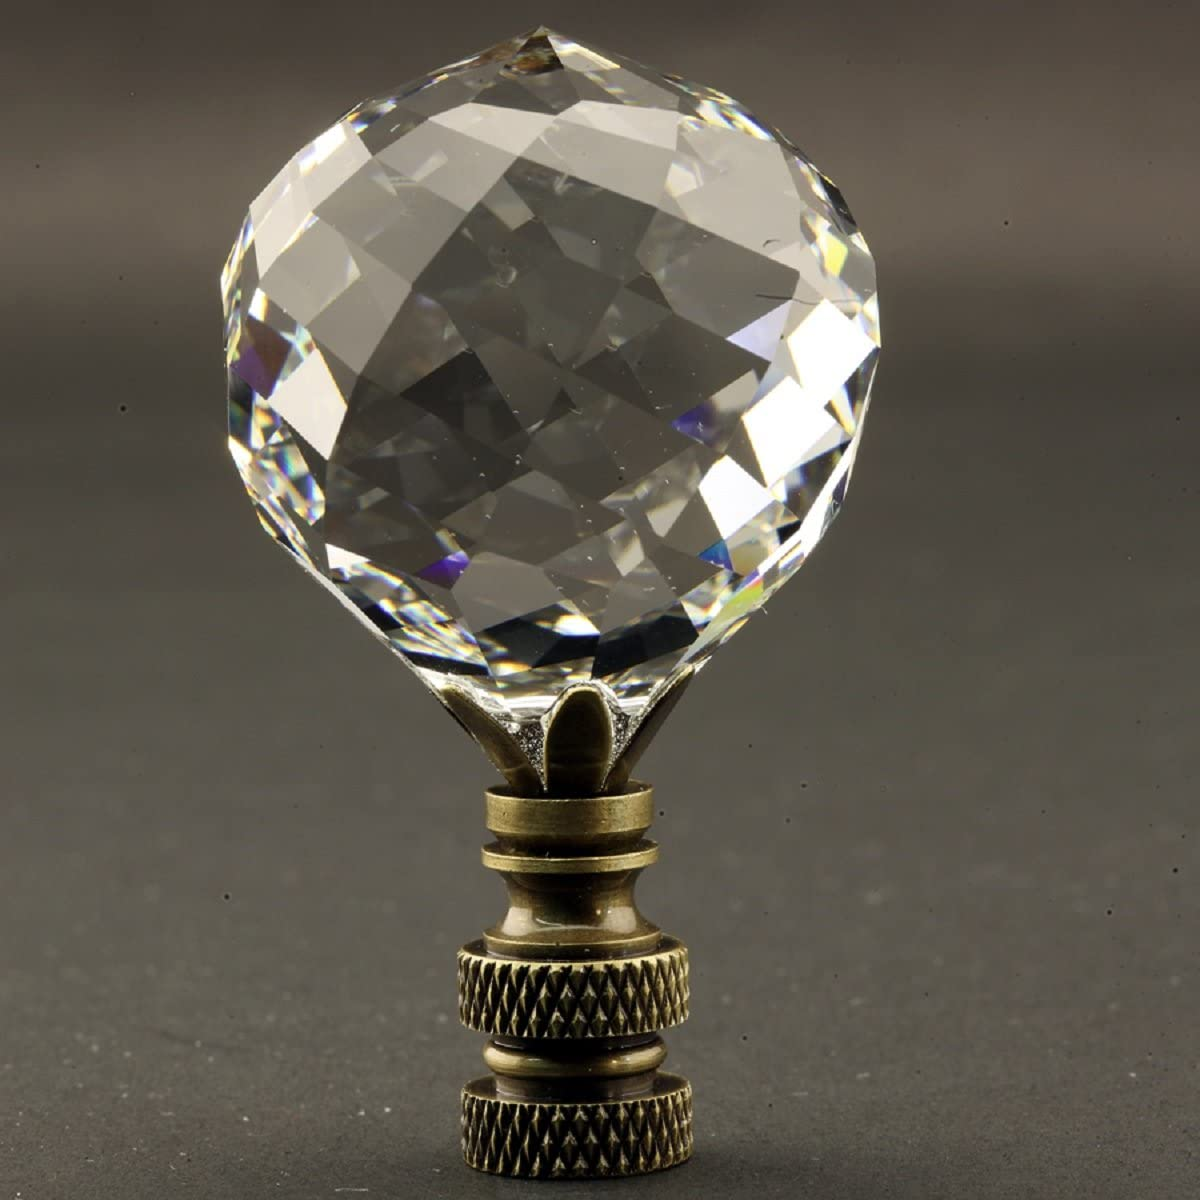 Swarovski Crystal Ranking TOP1 Faceted Ranking TOP10 Ball 40MM with Lamp ant Finial 1.57